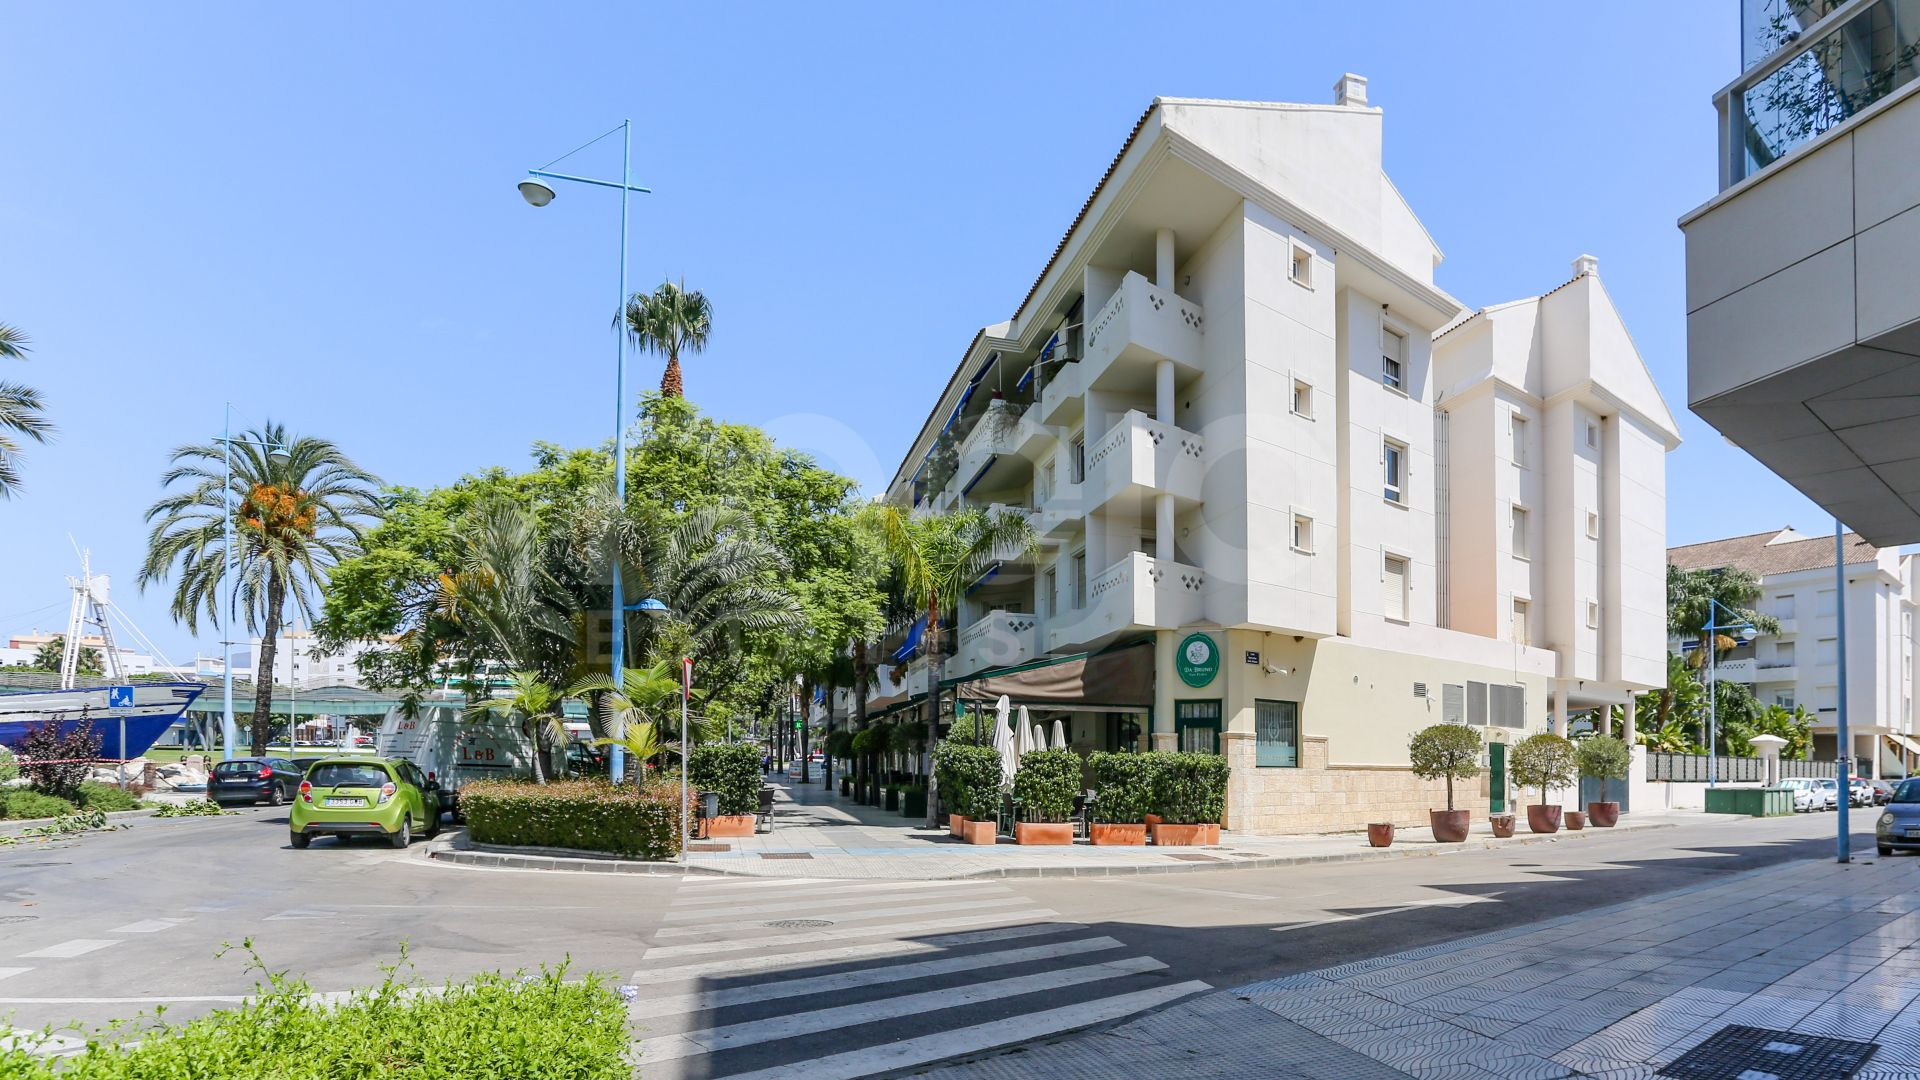 Beachside Duplex Penthouse centrally located in San Pedro next to the Boulevard - within walking distance to the beach and the charming old town.